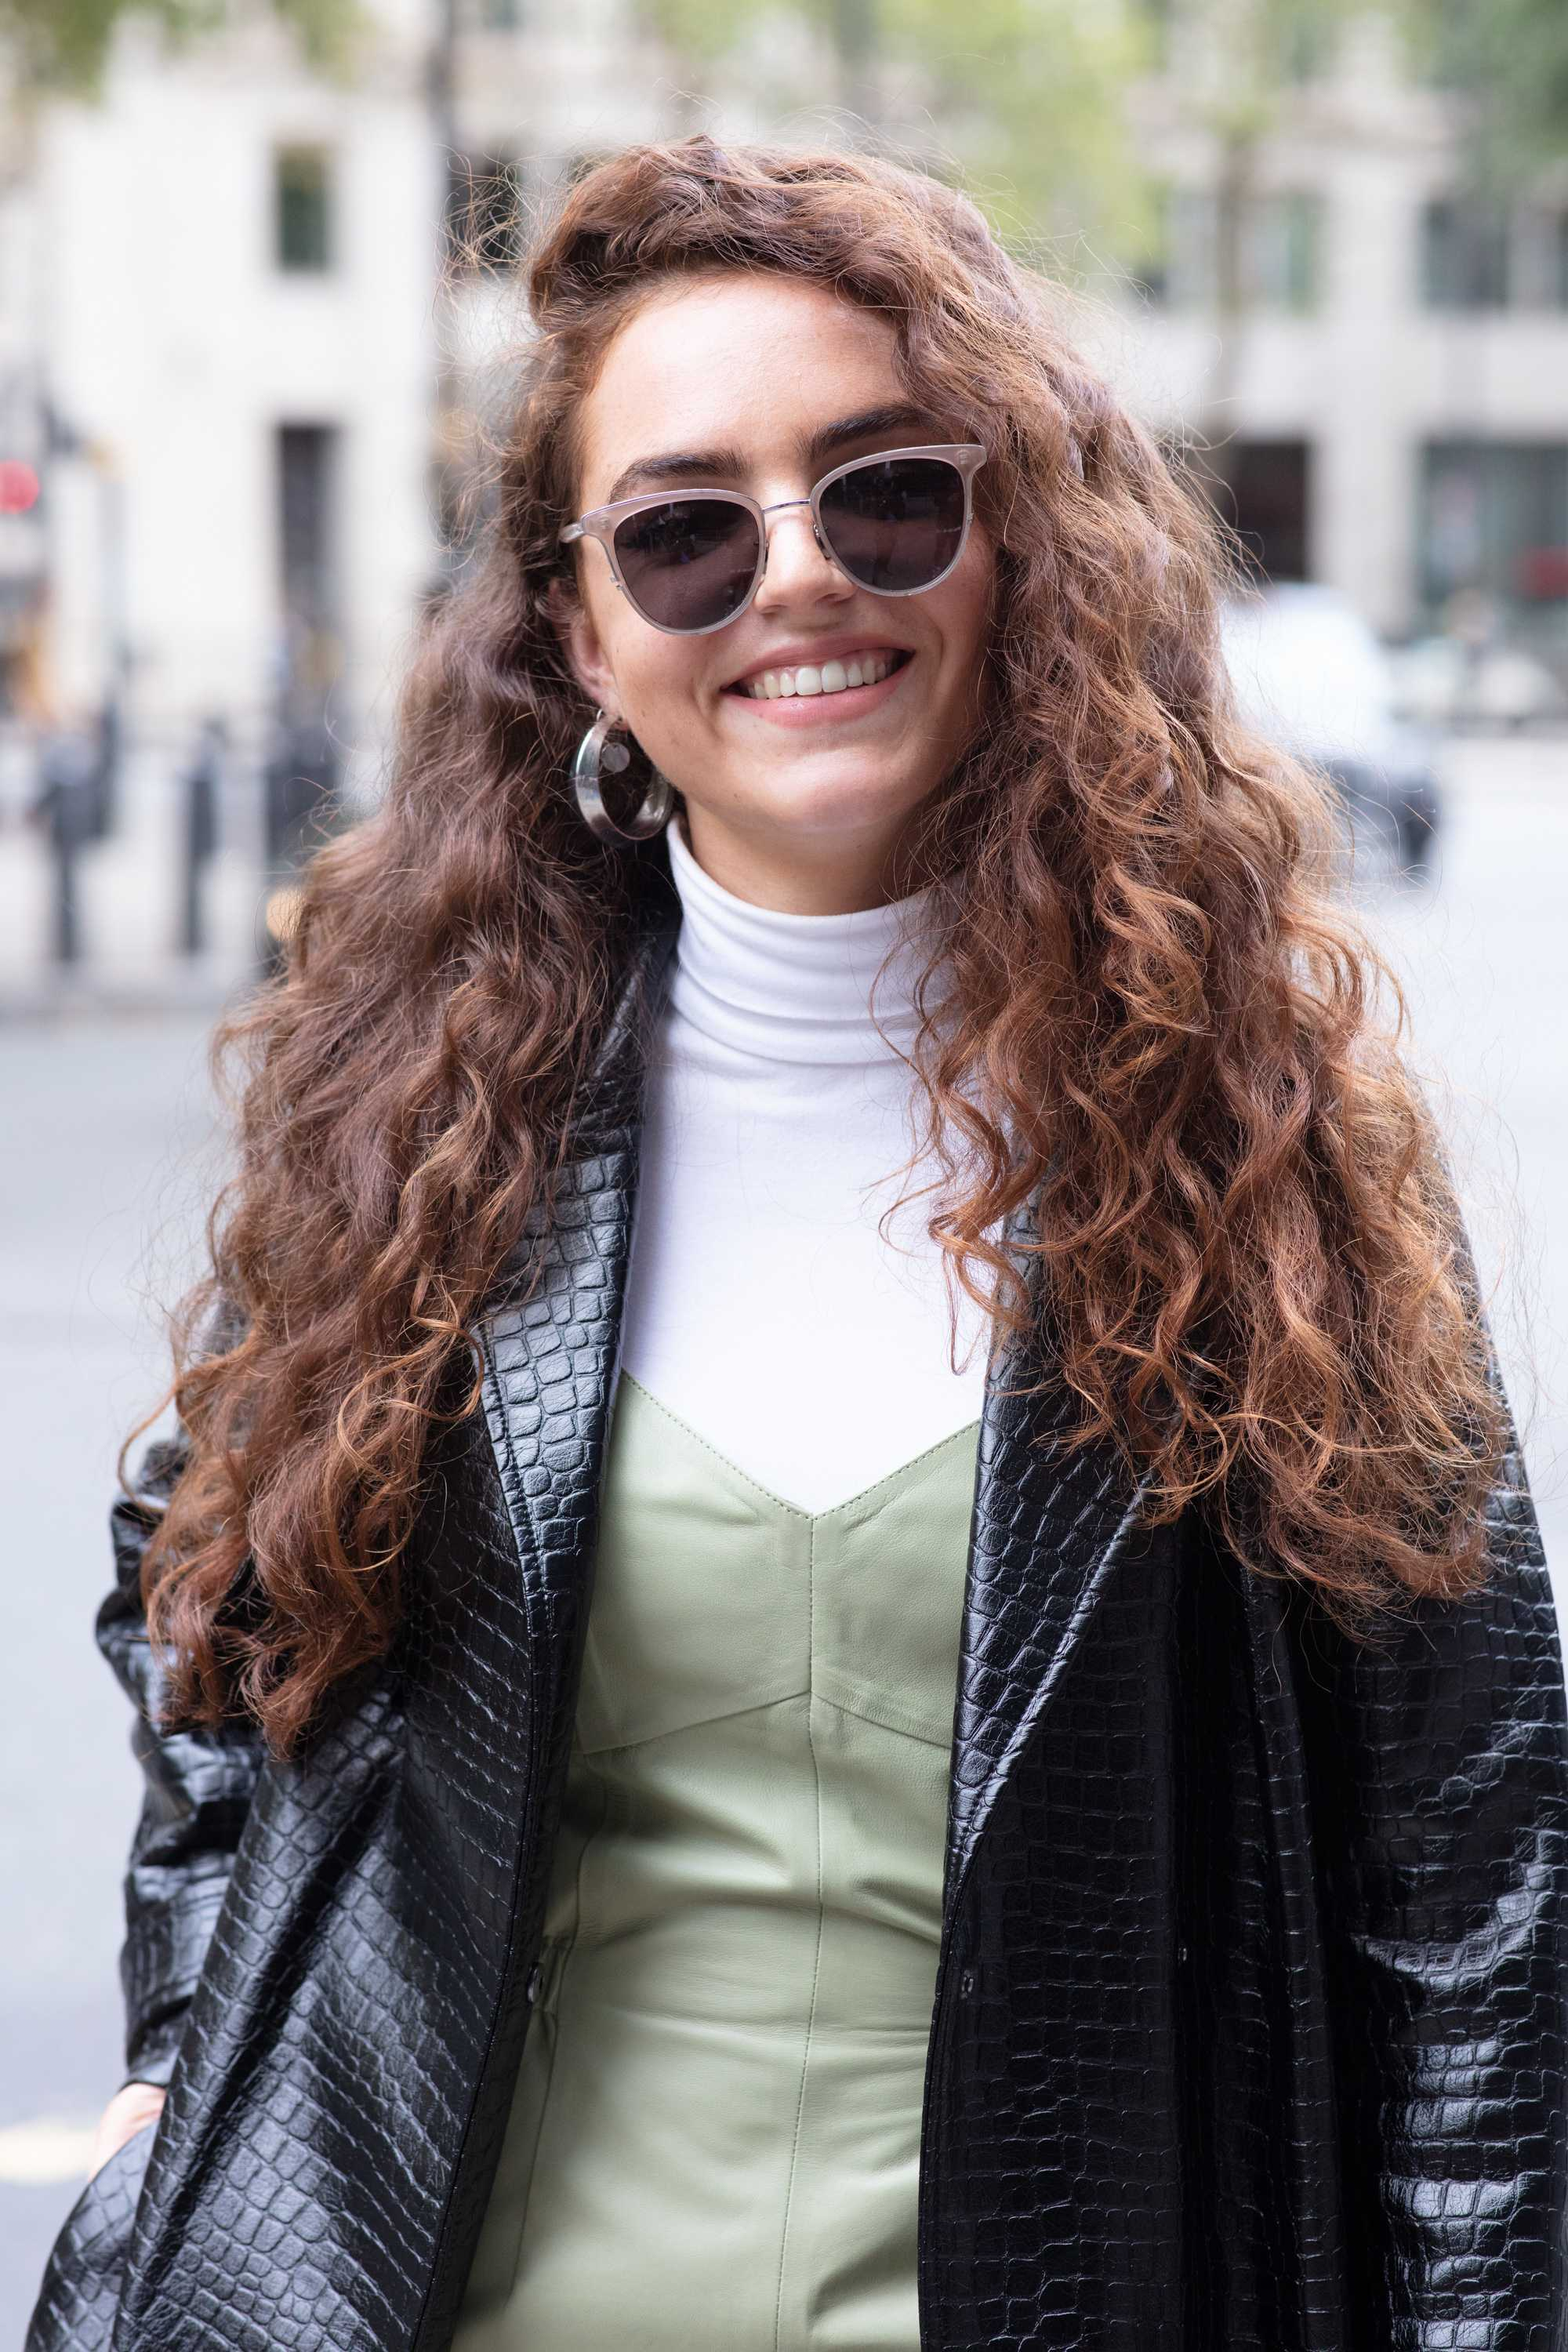 27 long curly hair ideas to add to your hair bucket list ...